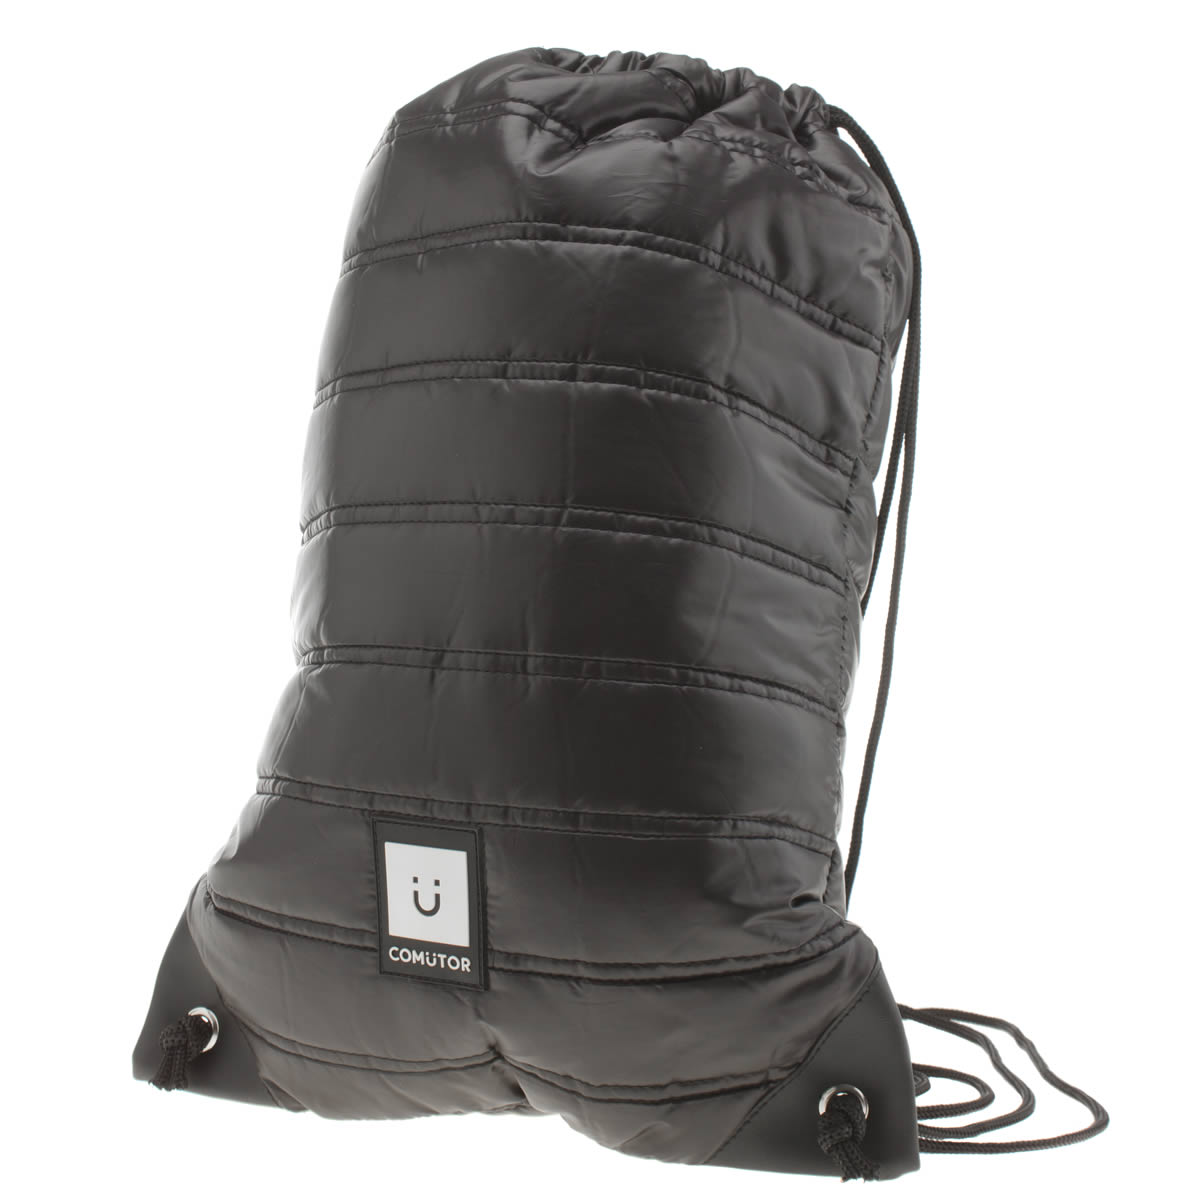 comutor Comutor Black Gym Pack Bags